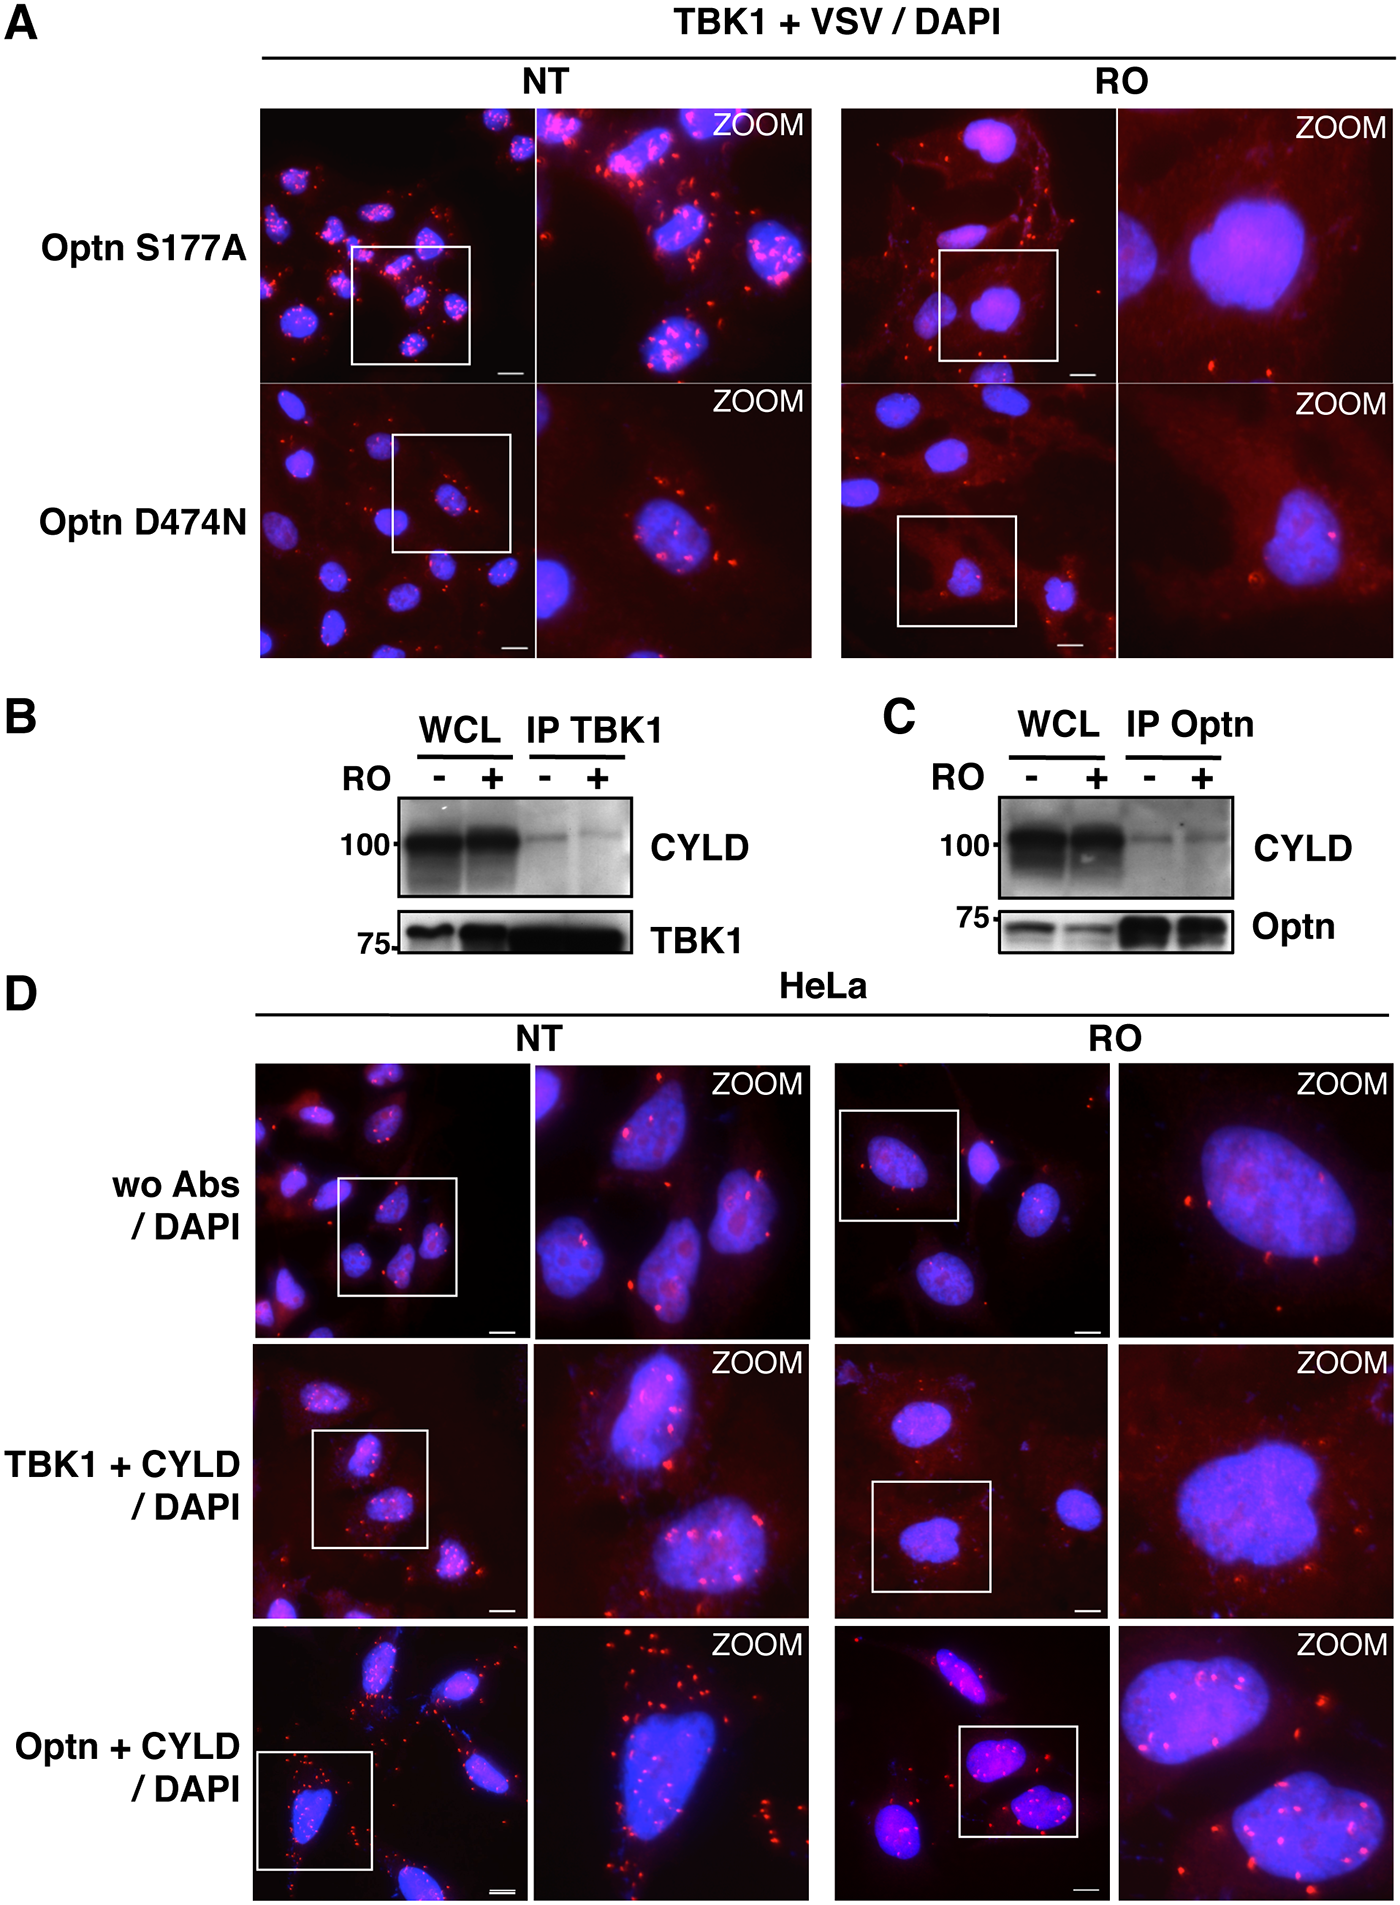 Characterization of the TBK1/CYLD- and Optn/CYLD-containing complex formation in G2/M synchronized cells.